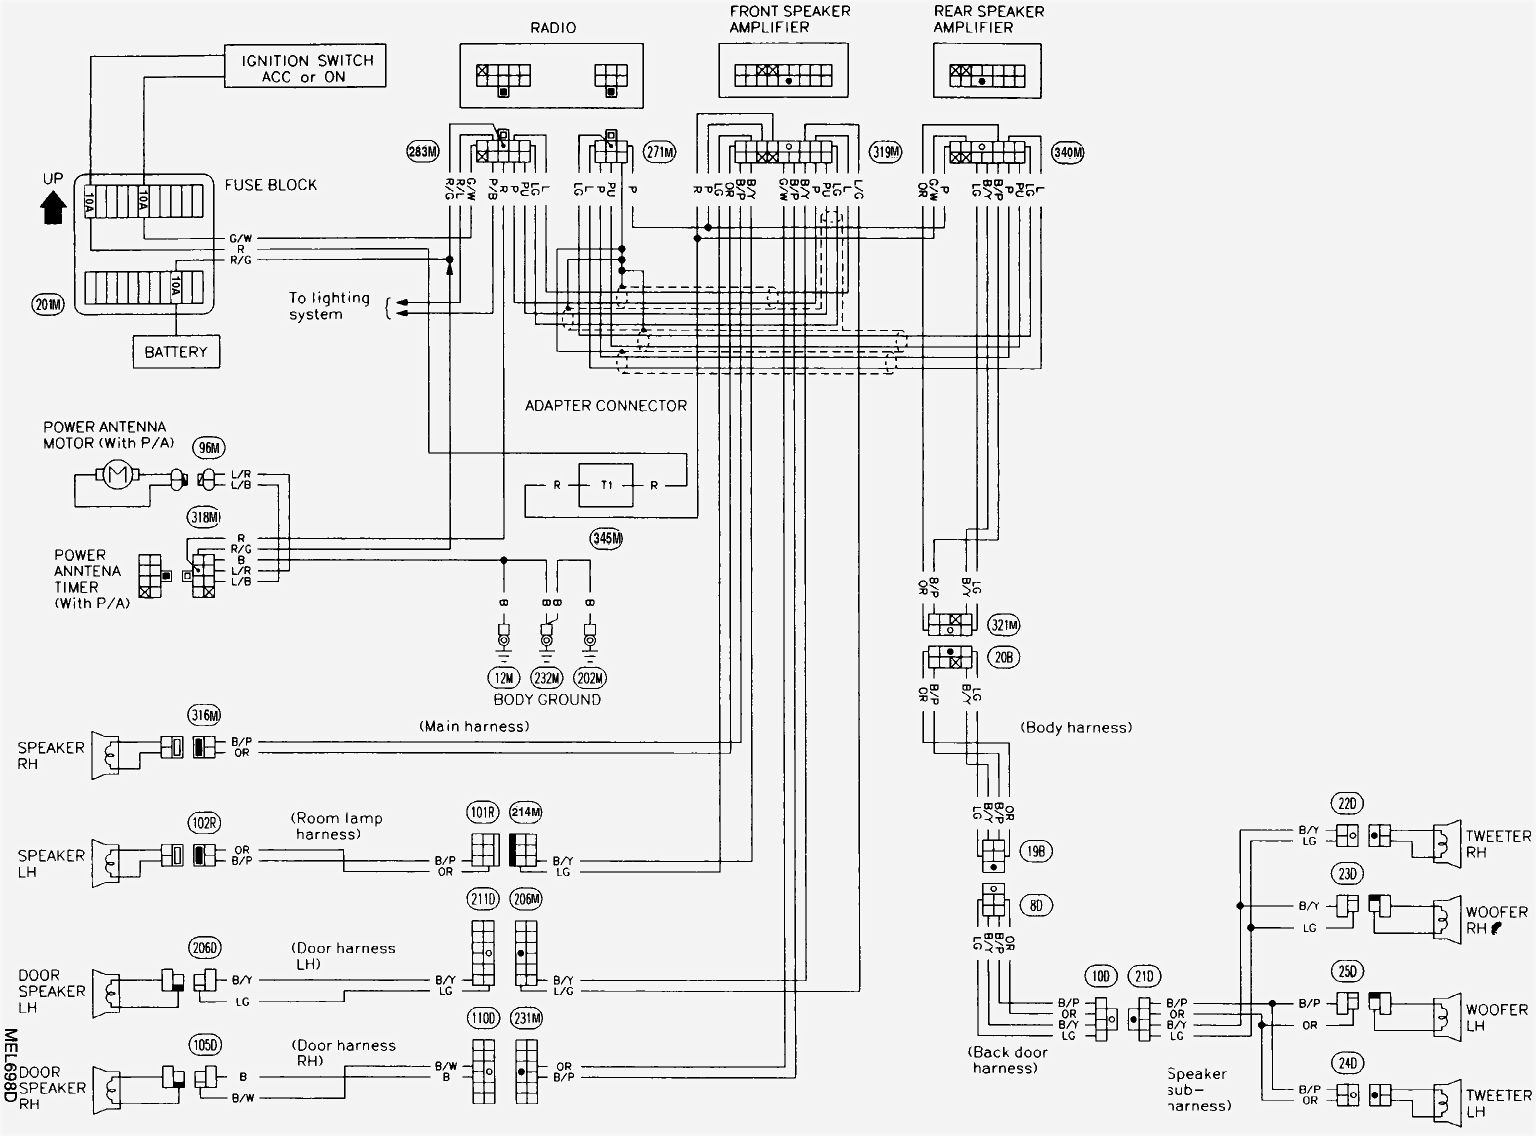 T 49f Wiring Diagram - True T 49f Wiring Diagram Collection Contemporary Nissan Almera Wiring Diagram Elaboration Wiring 8 Download Wiring Diagram 9o